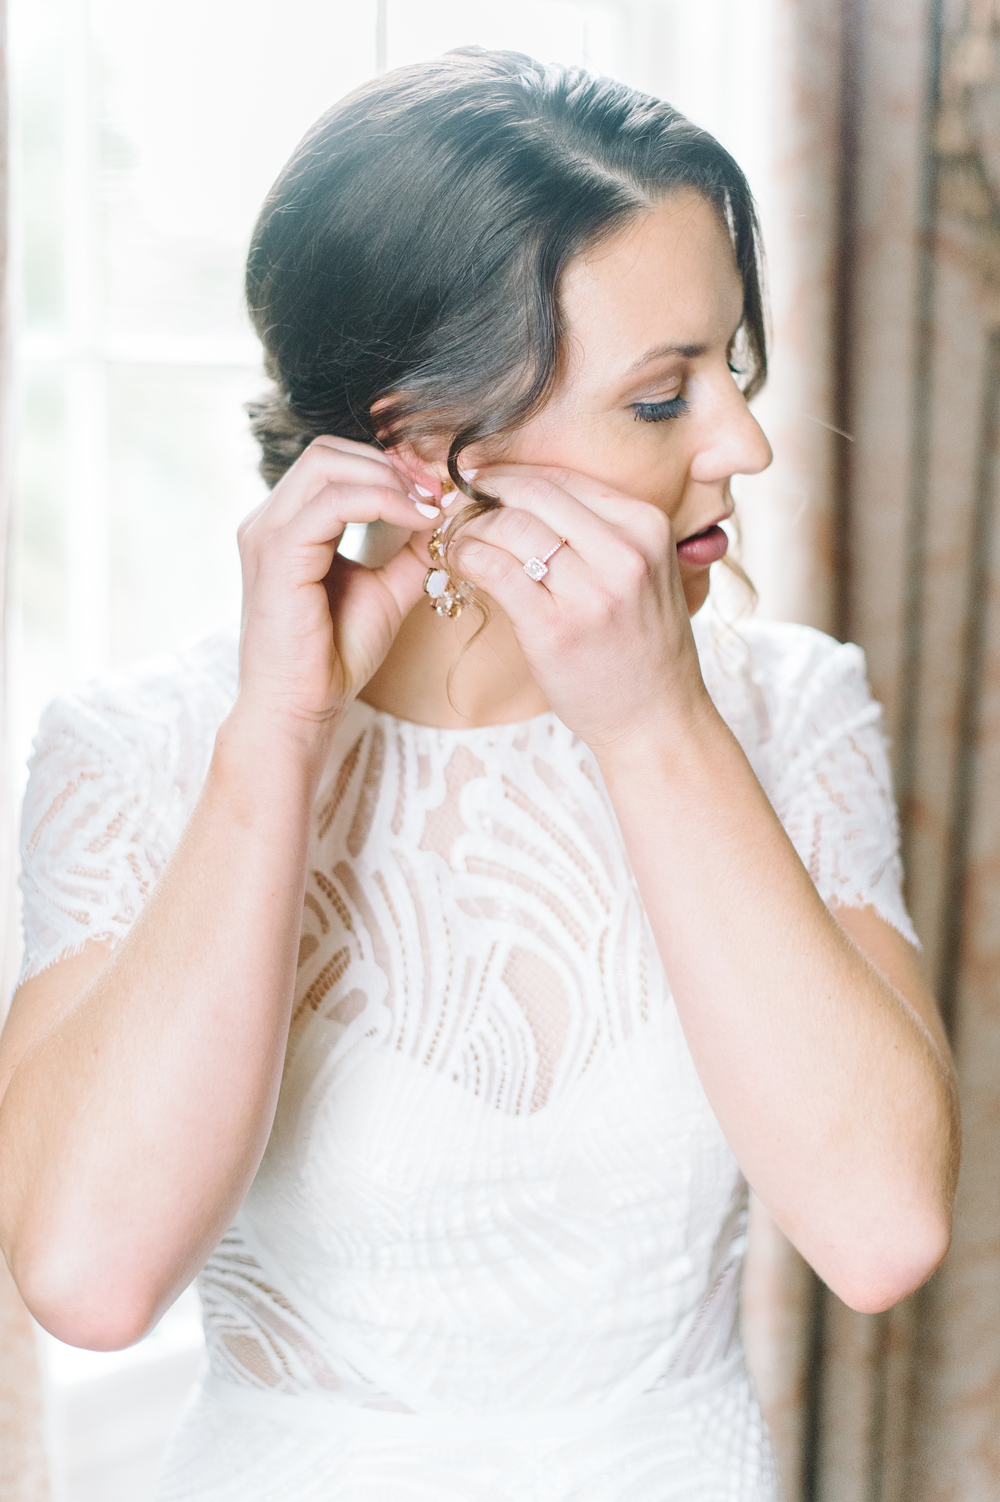 Mary+Zach-LowndesGroveWeddingbyAaronandJillianPhotography-72.jpg